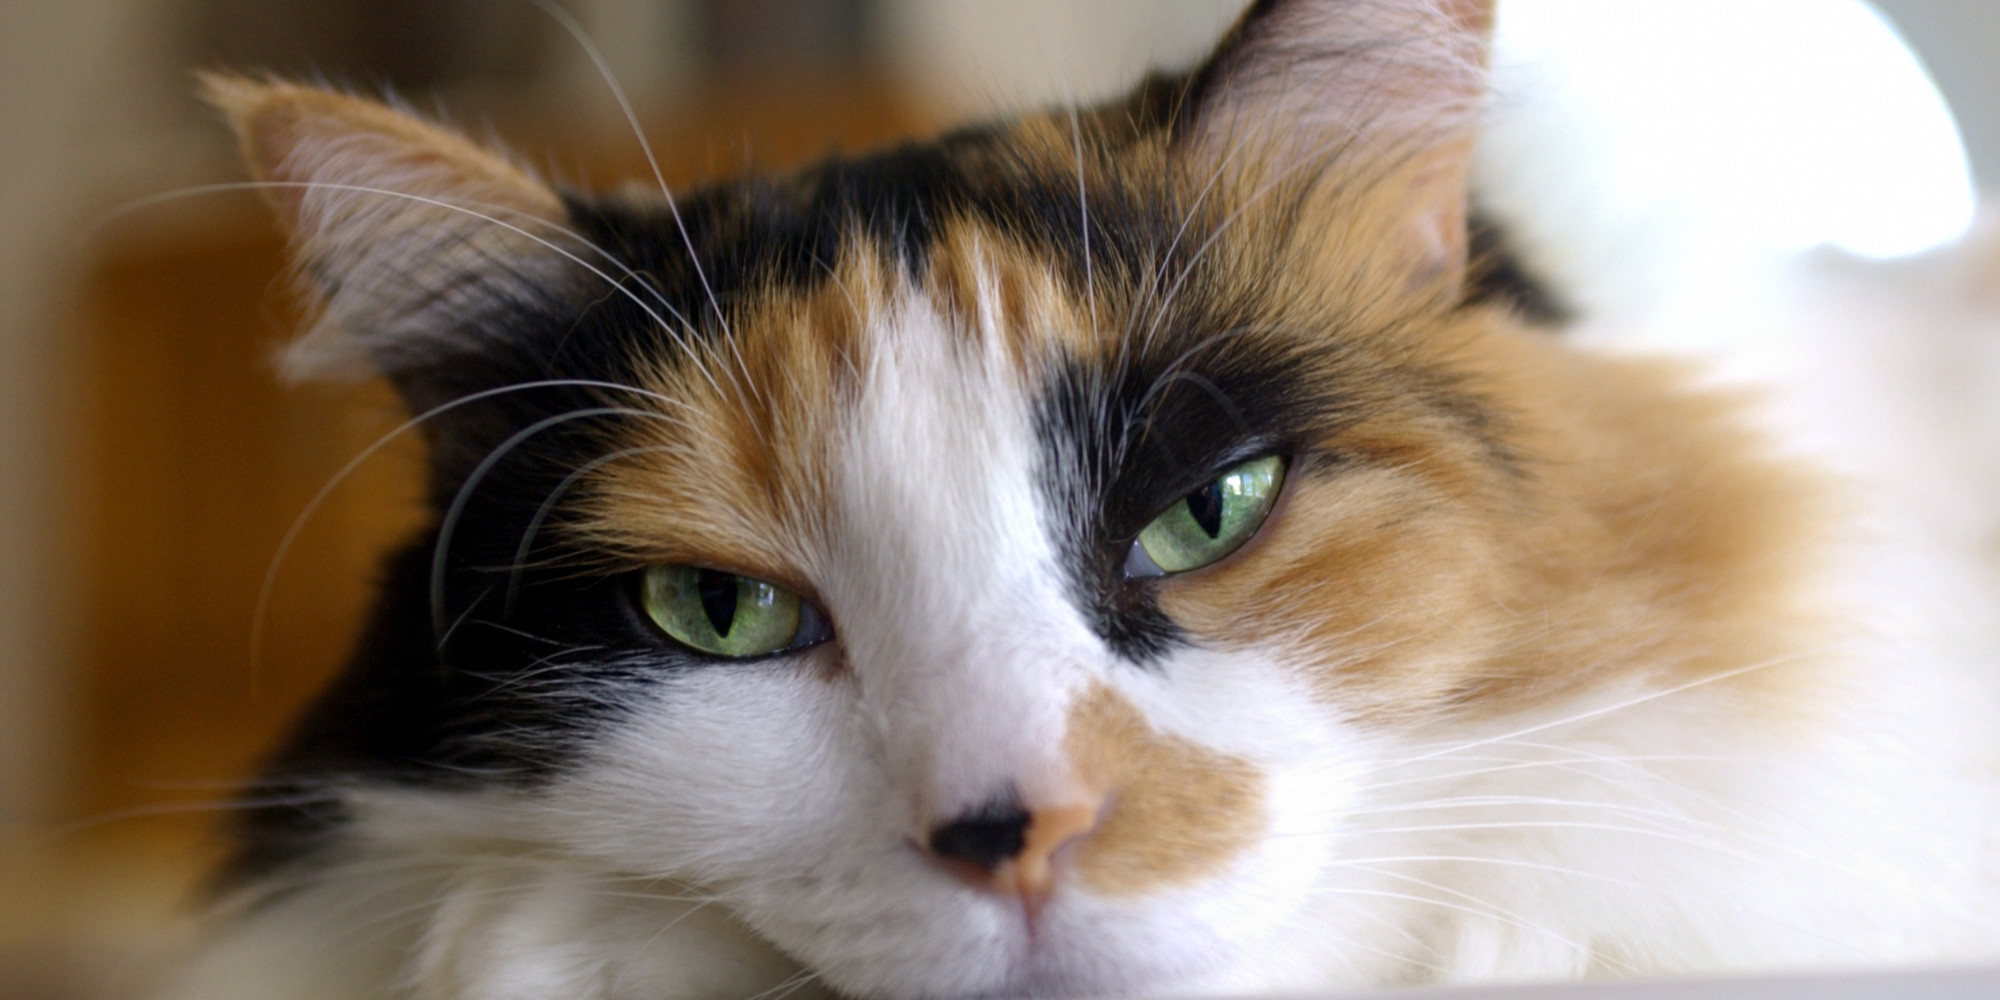 How old is too old to spay a cat